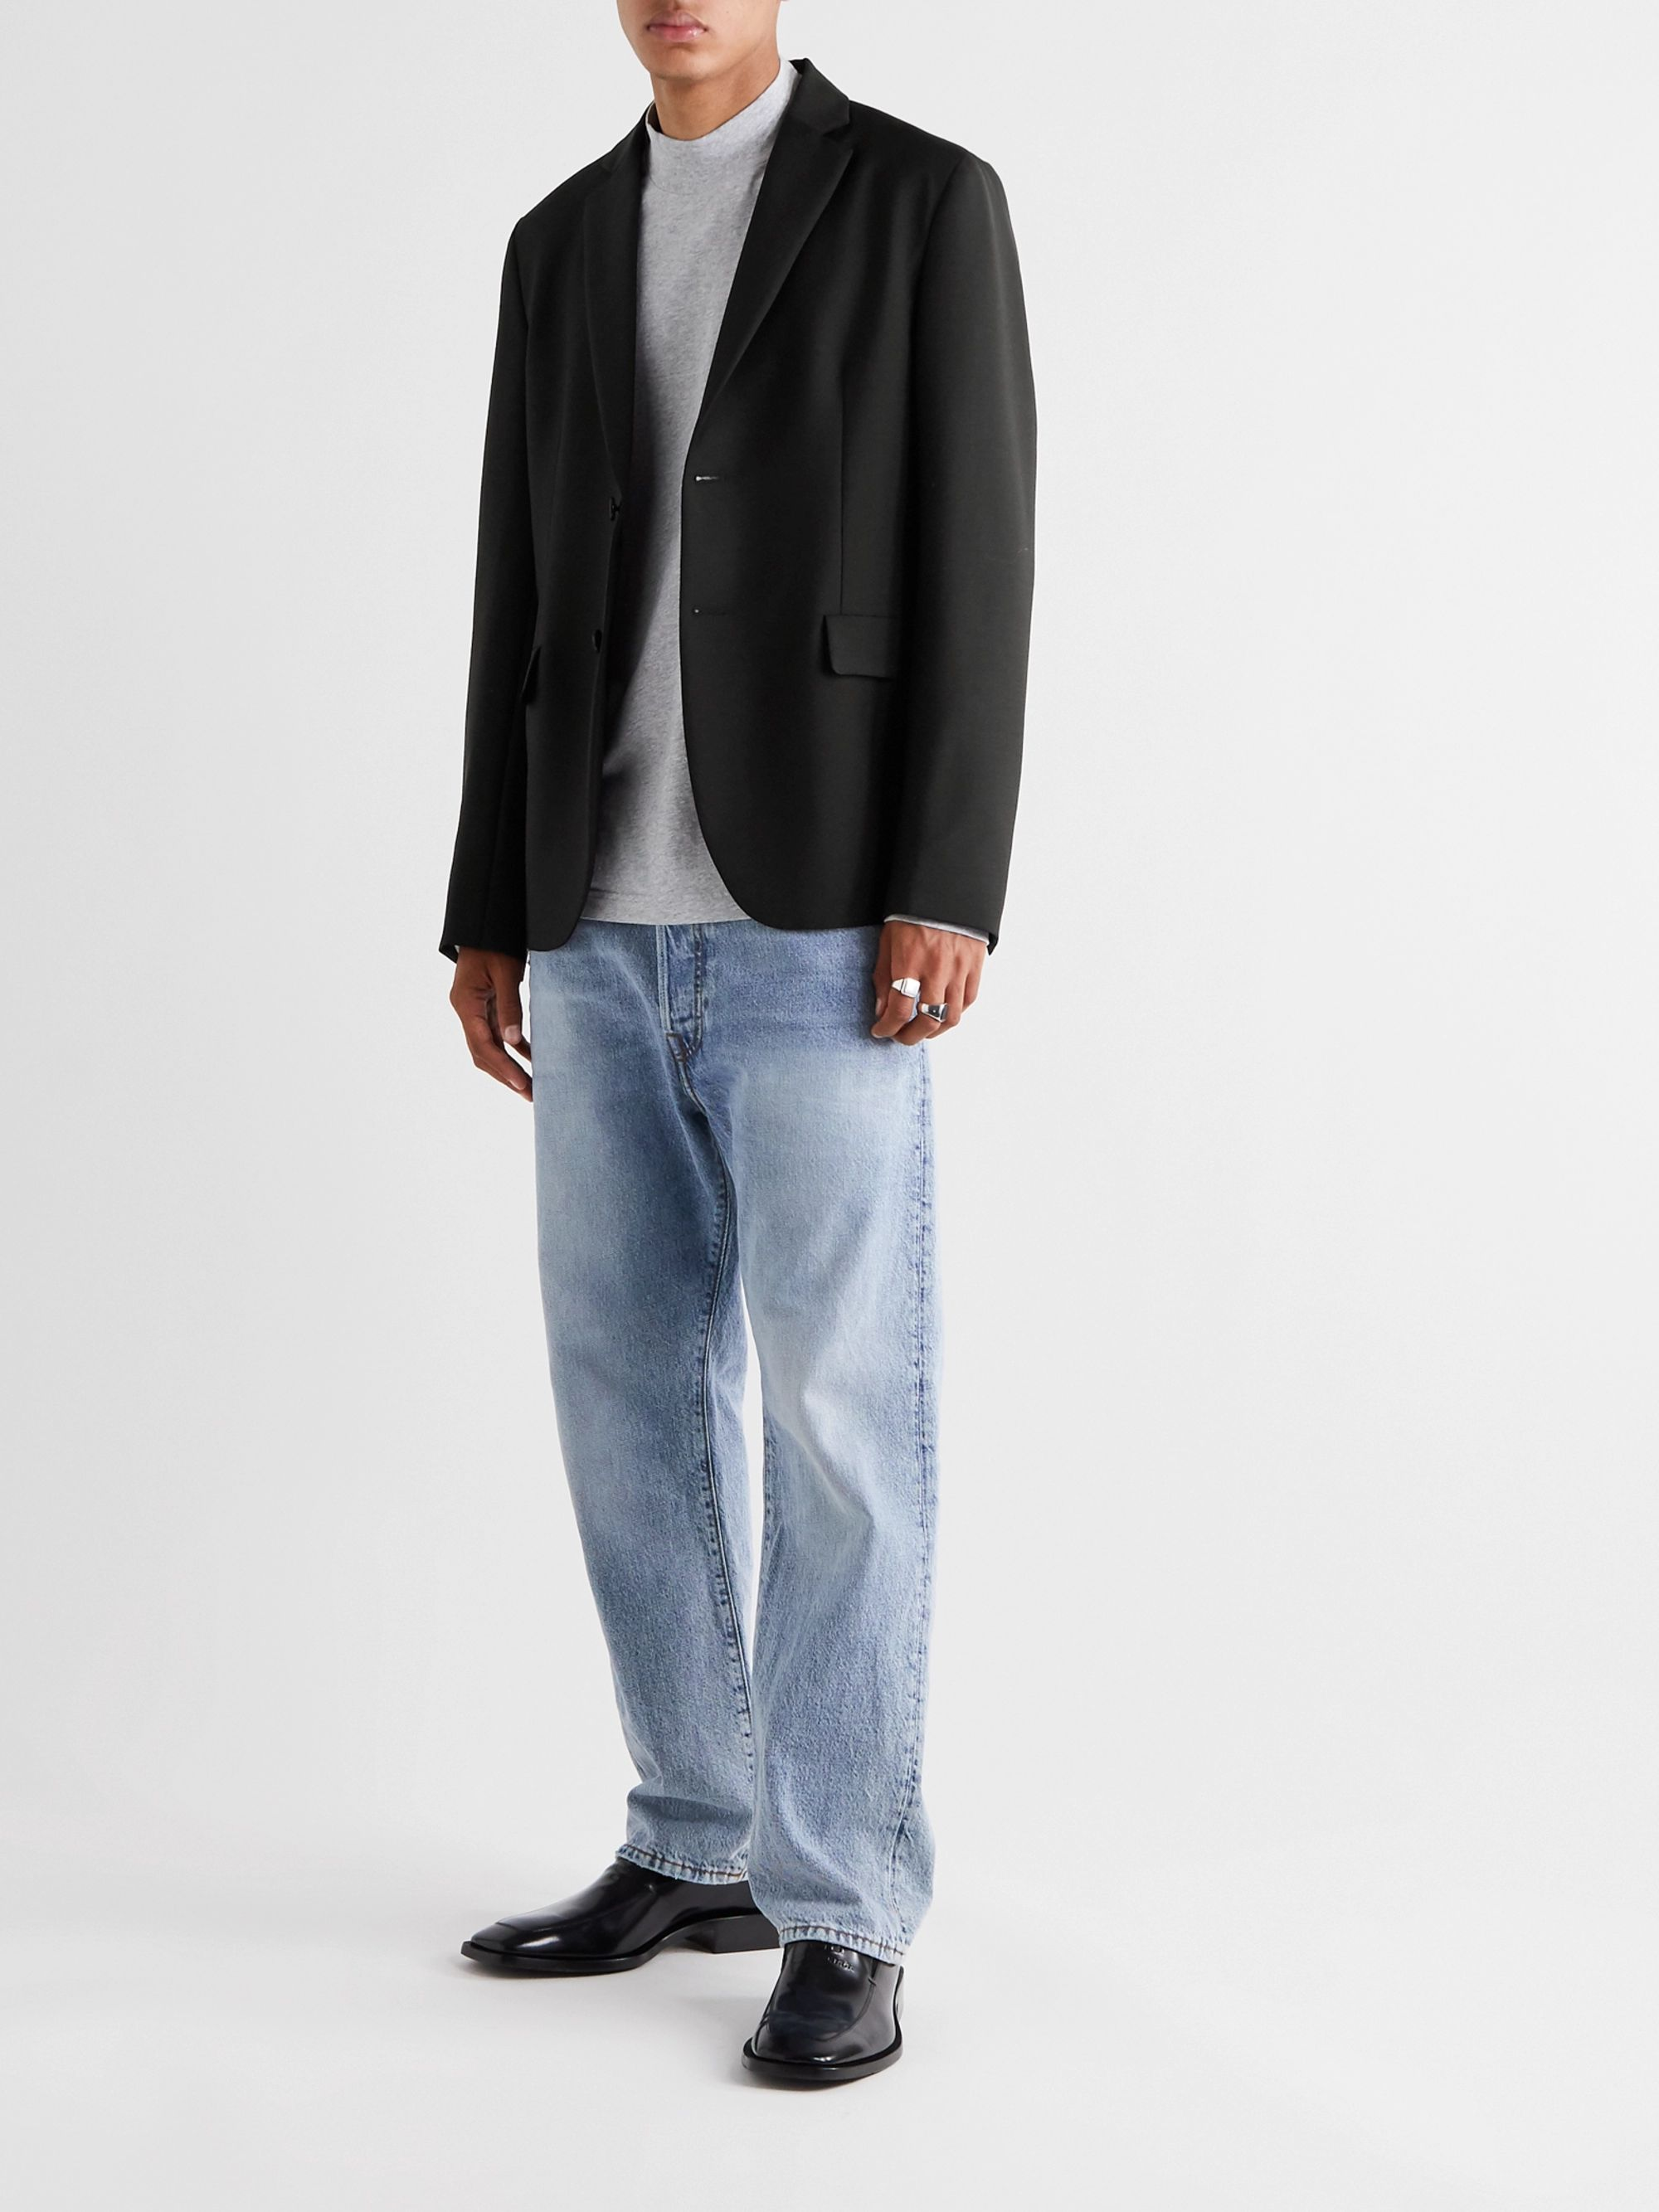 Acne Studios Slim-Fit Unstructured Wool and Mohair-Blend Blazer